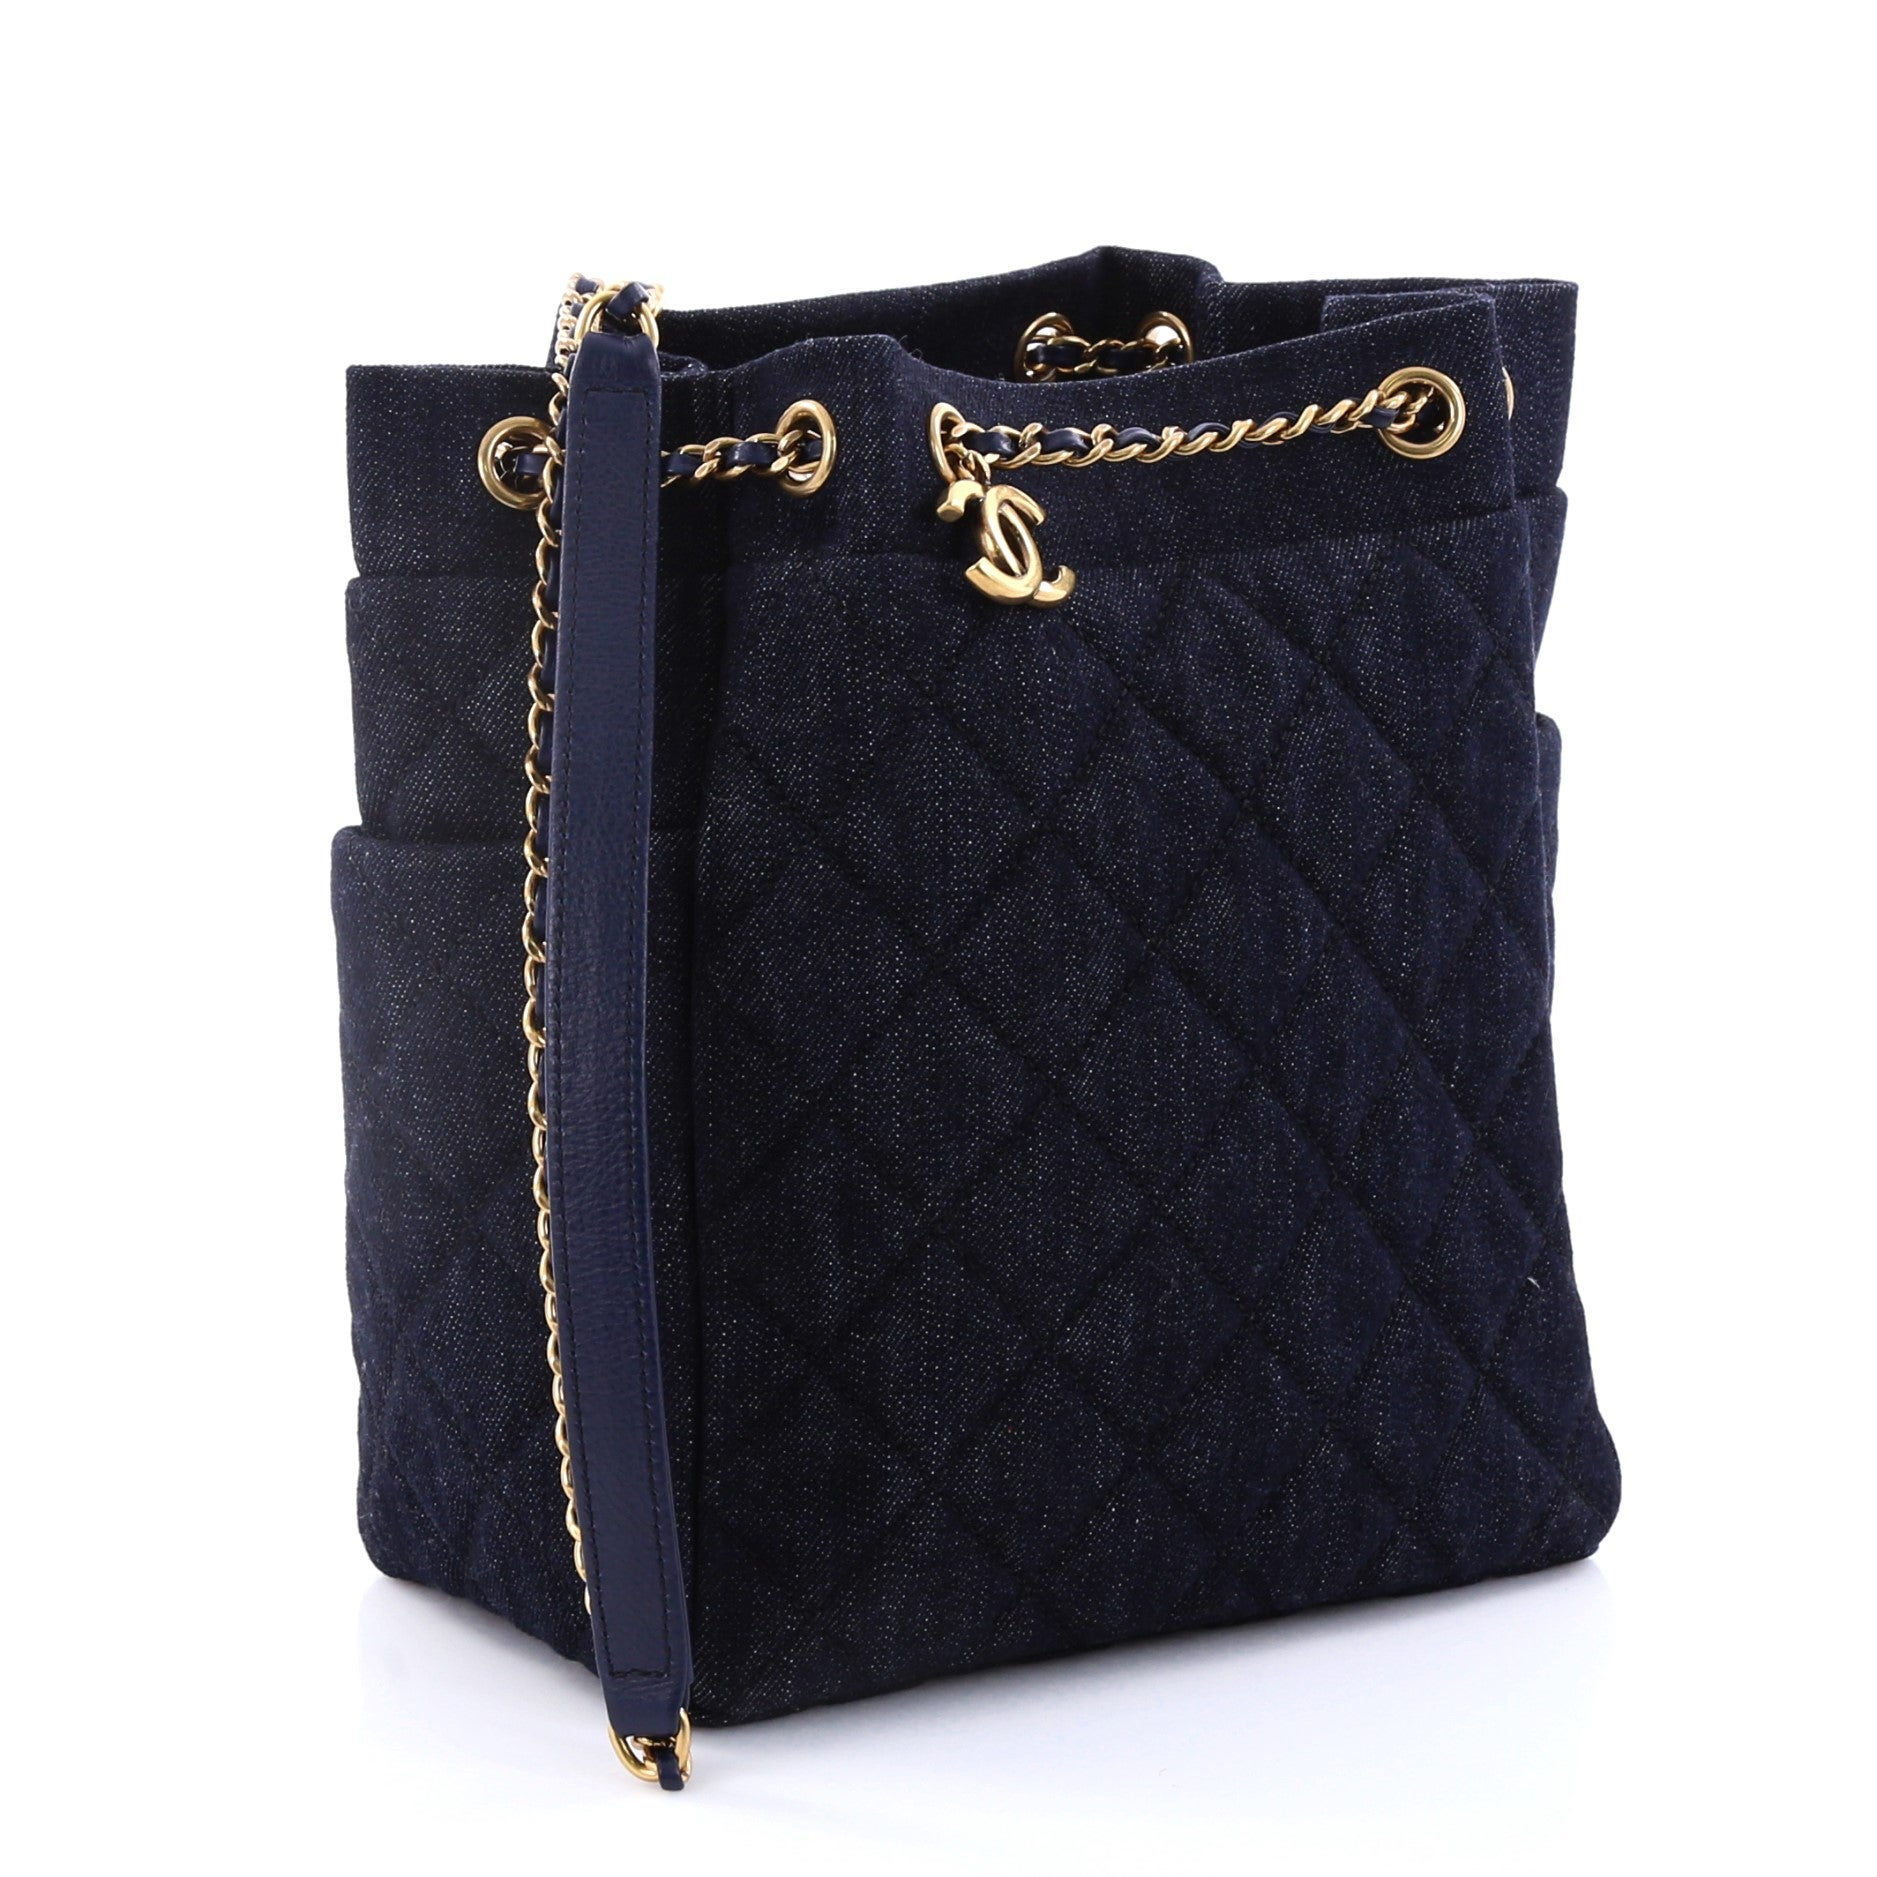 ff76f01a5d93 Chanel Urban Spirit Drawstring Bag Quilted Denim Small at 1stdibs